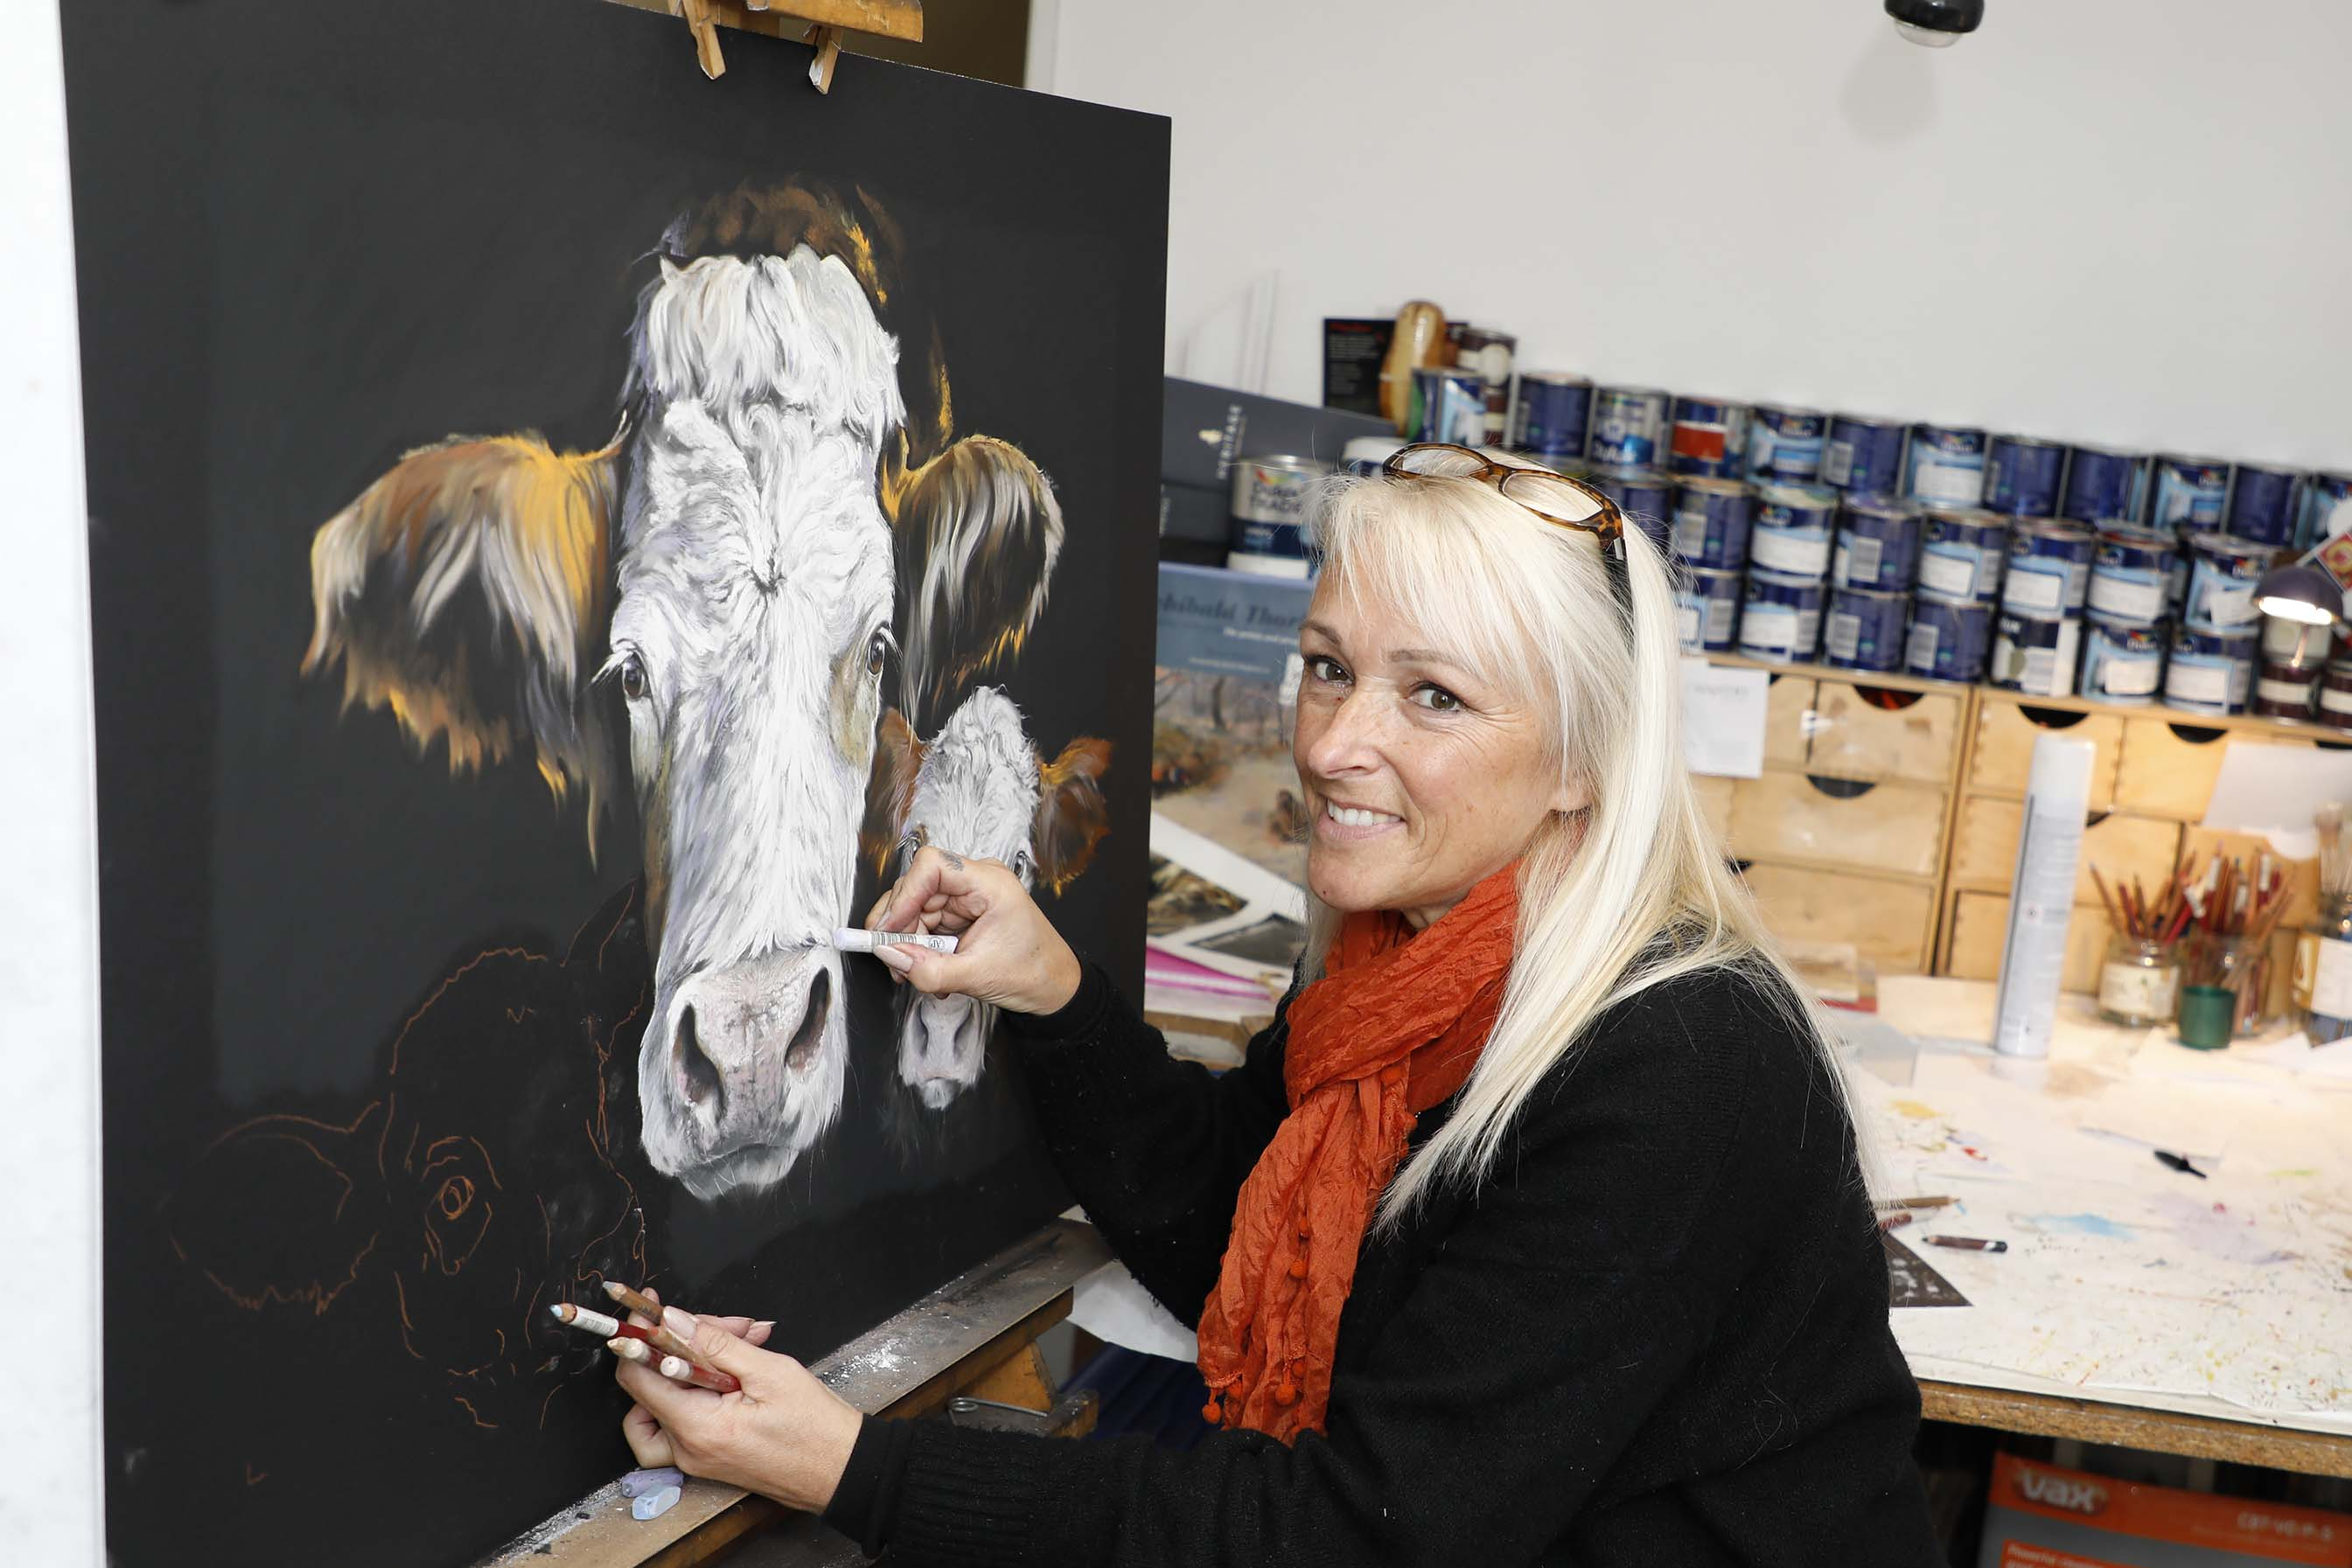 Kay Johns produces artwork which takes the local countryside as its inspiration.